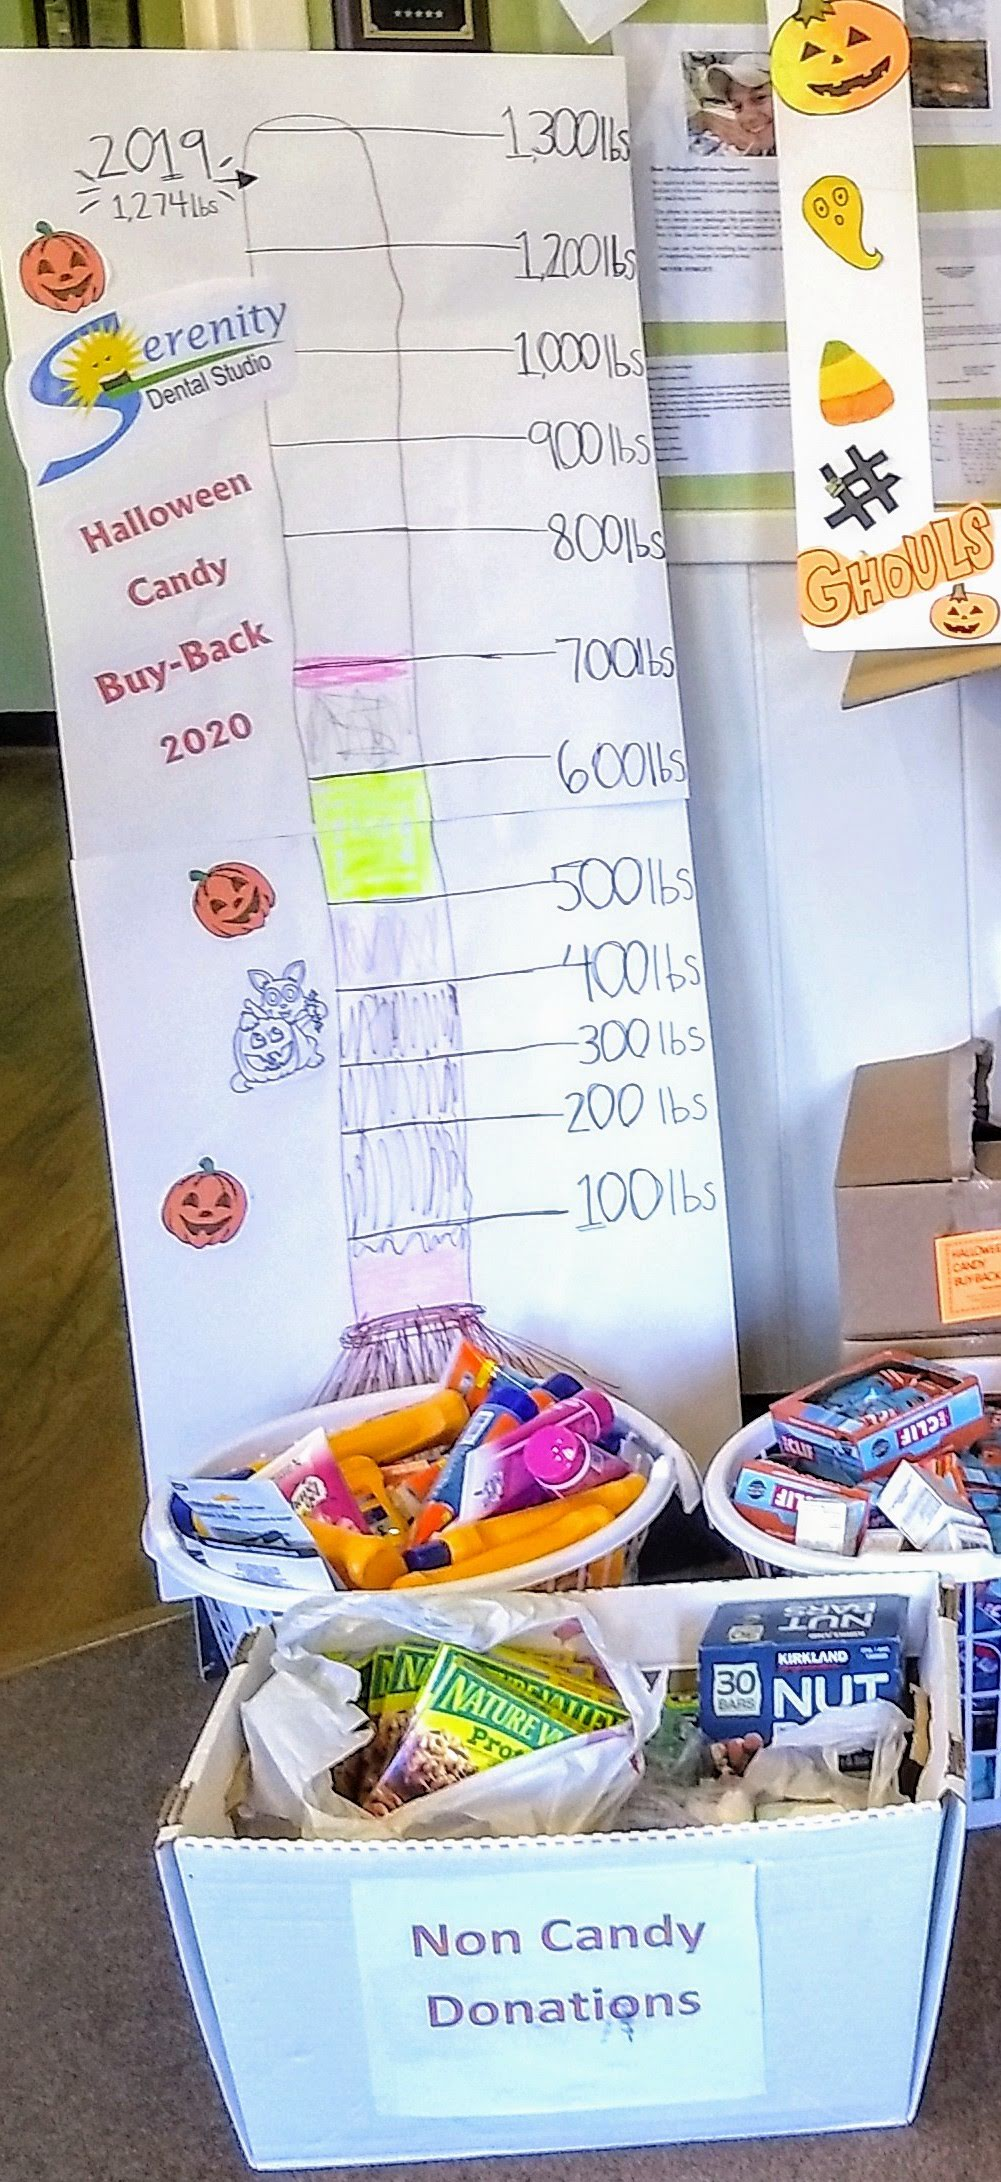 700 pounds of candy donated